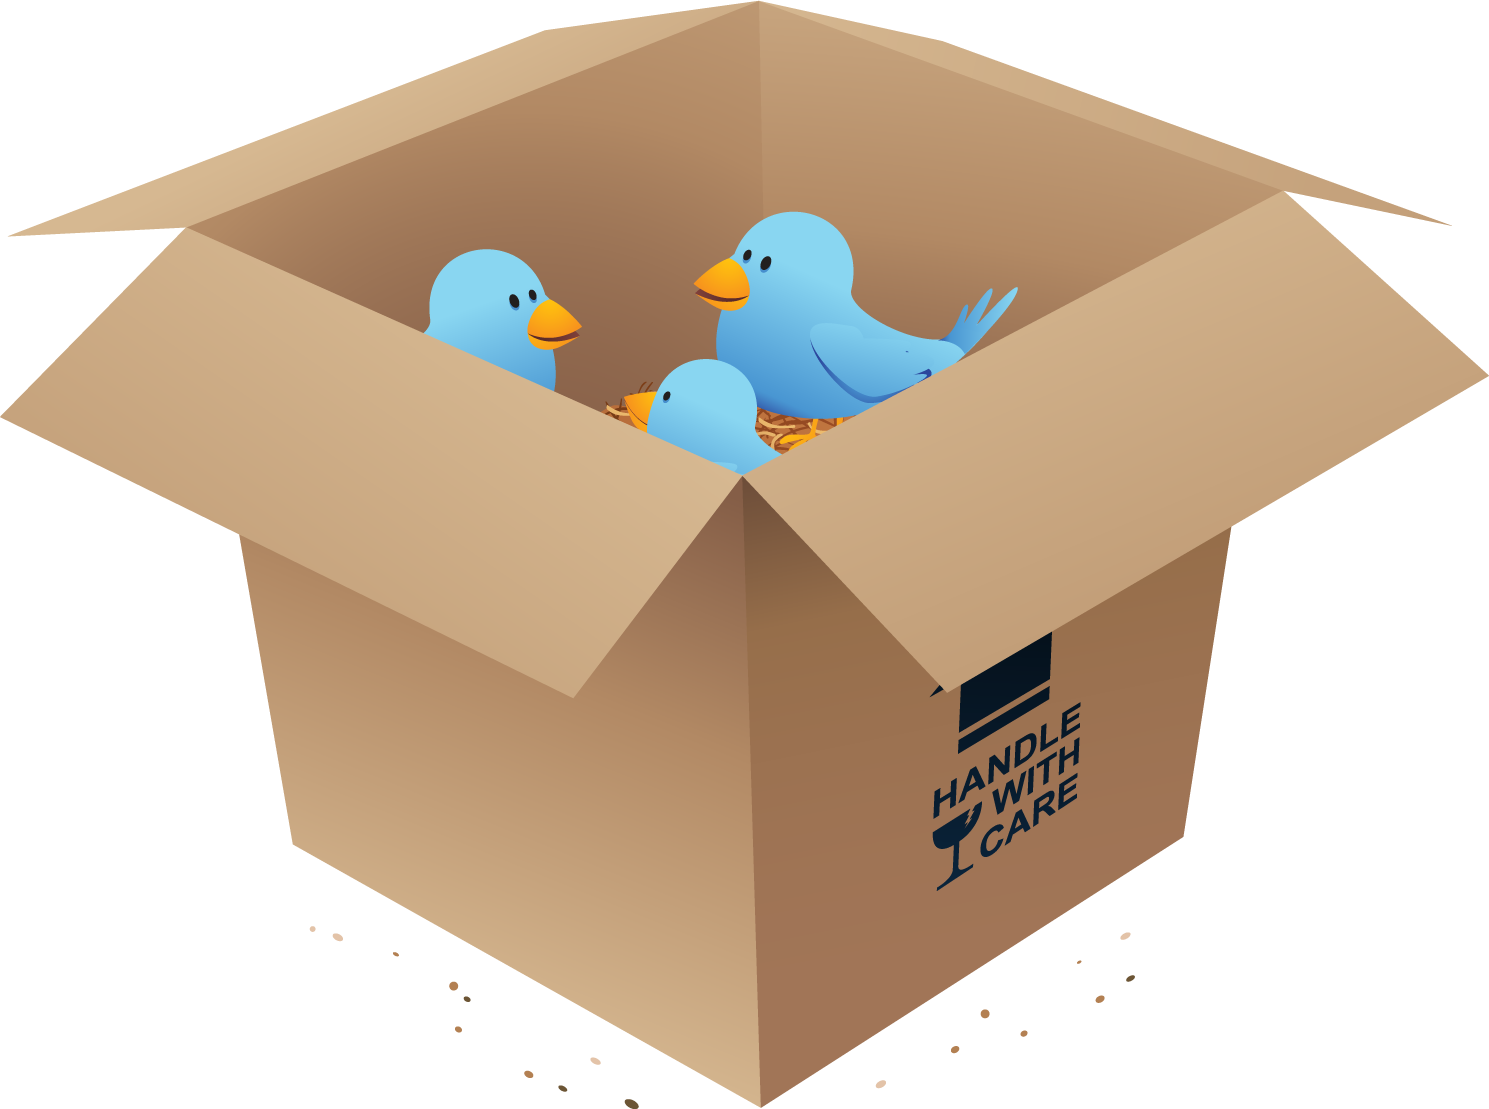 twitterbox.png